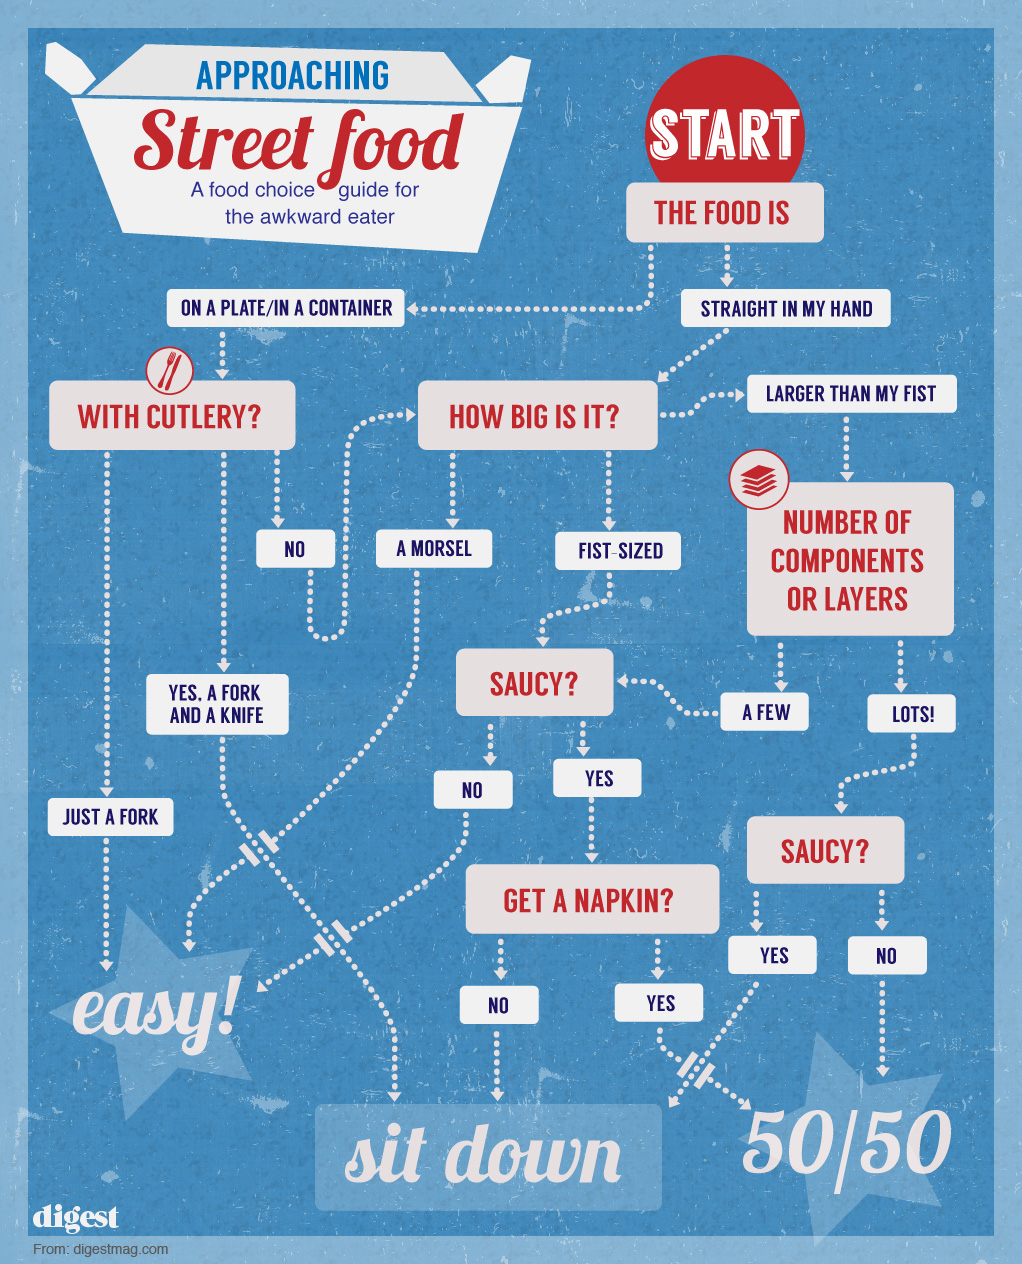 Street food - awkward eater's guide